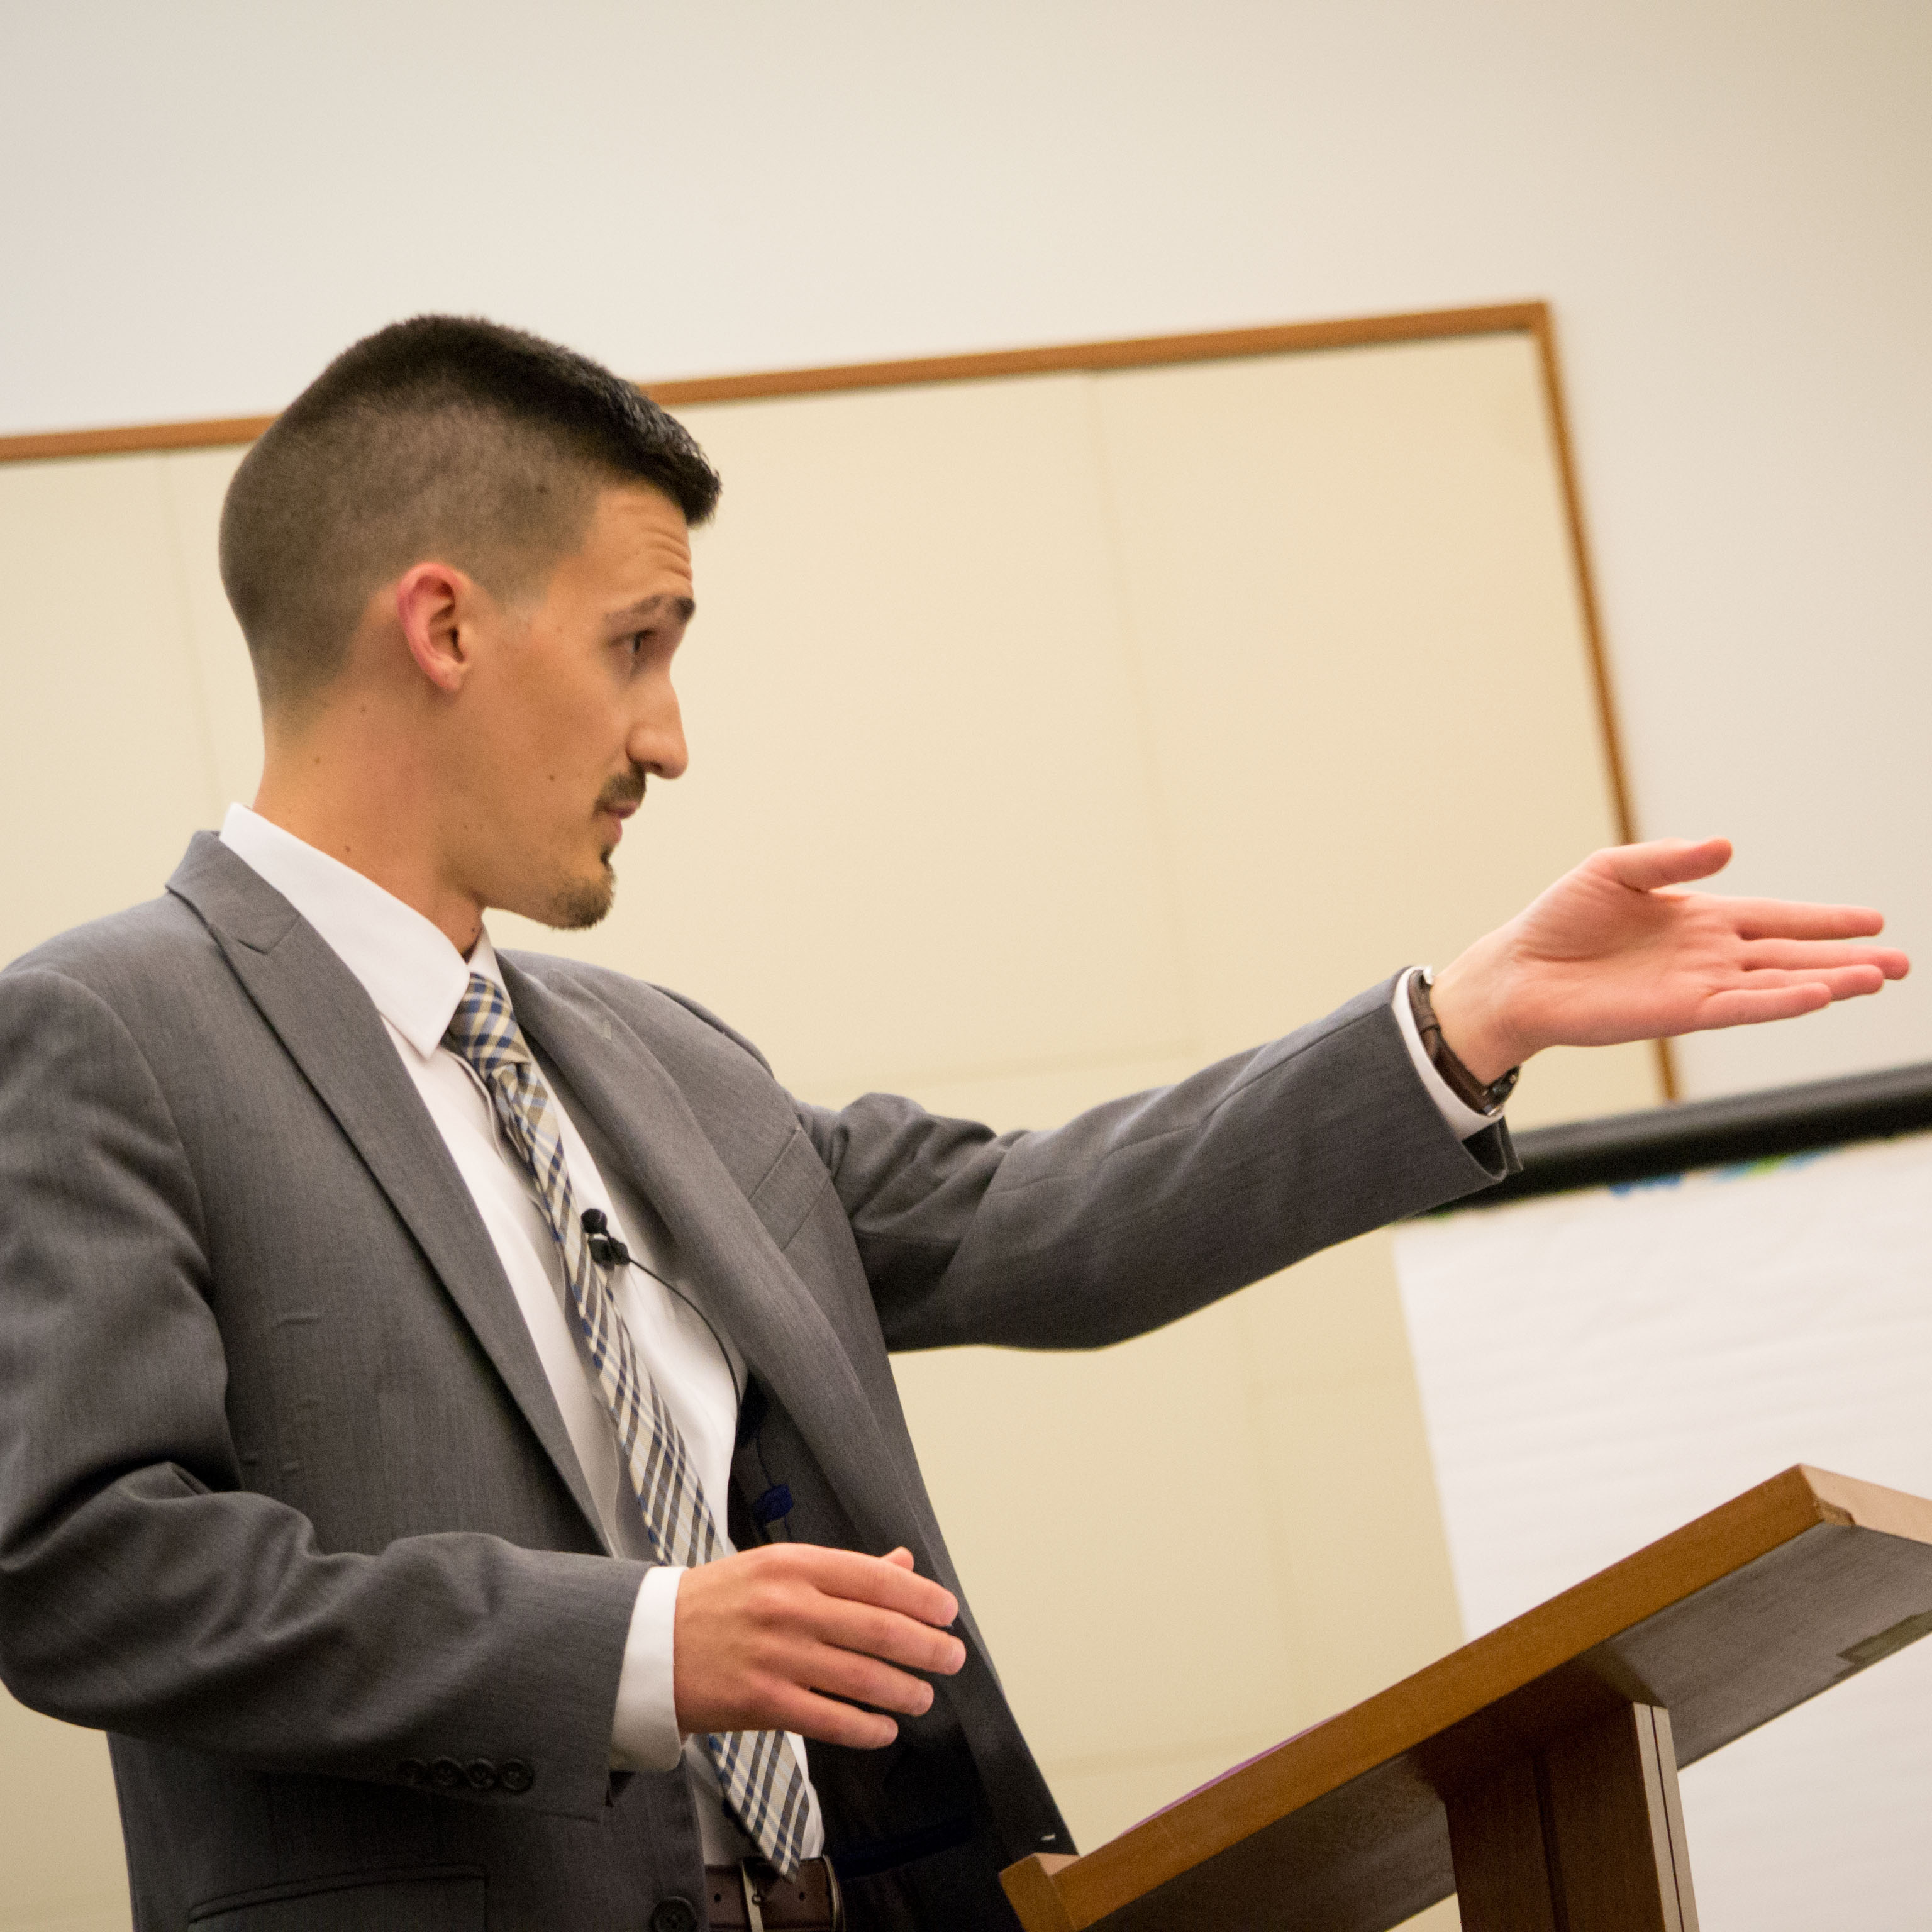 The Top Gun runner up, Eric Fledderman, argues strongly in his mock trial presentation